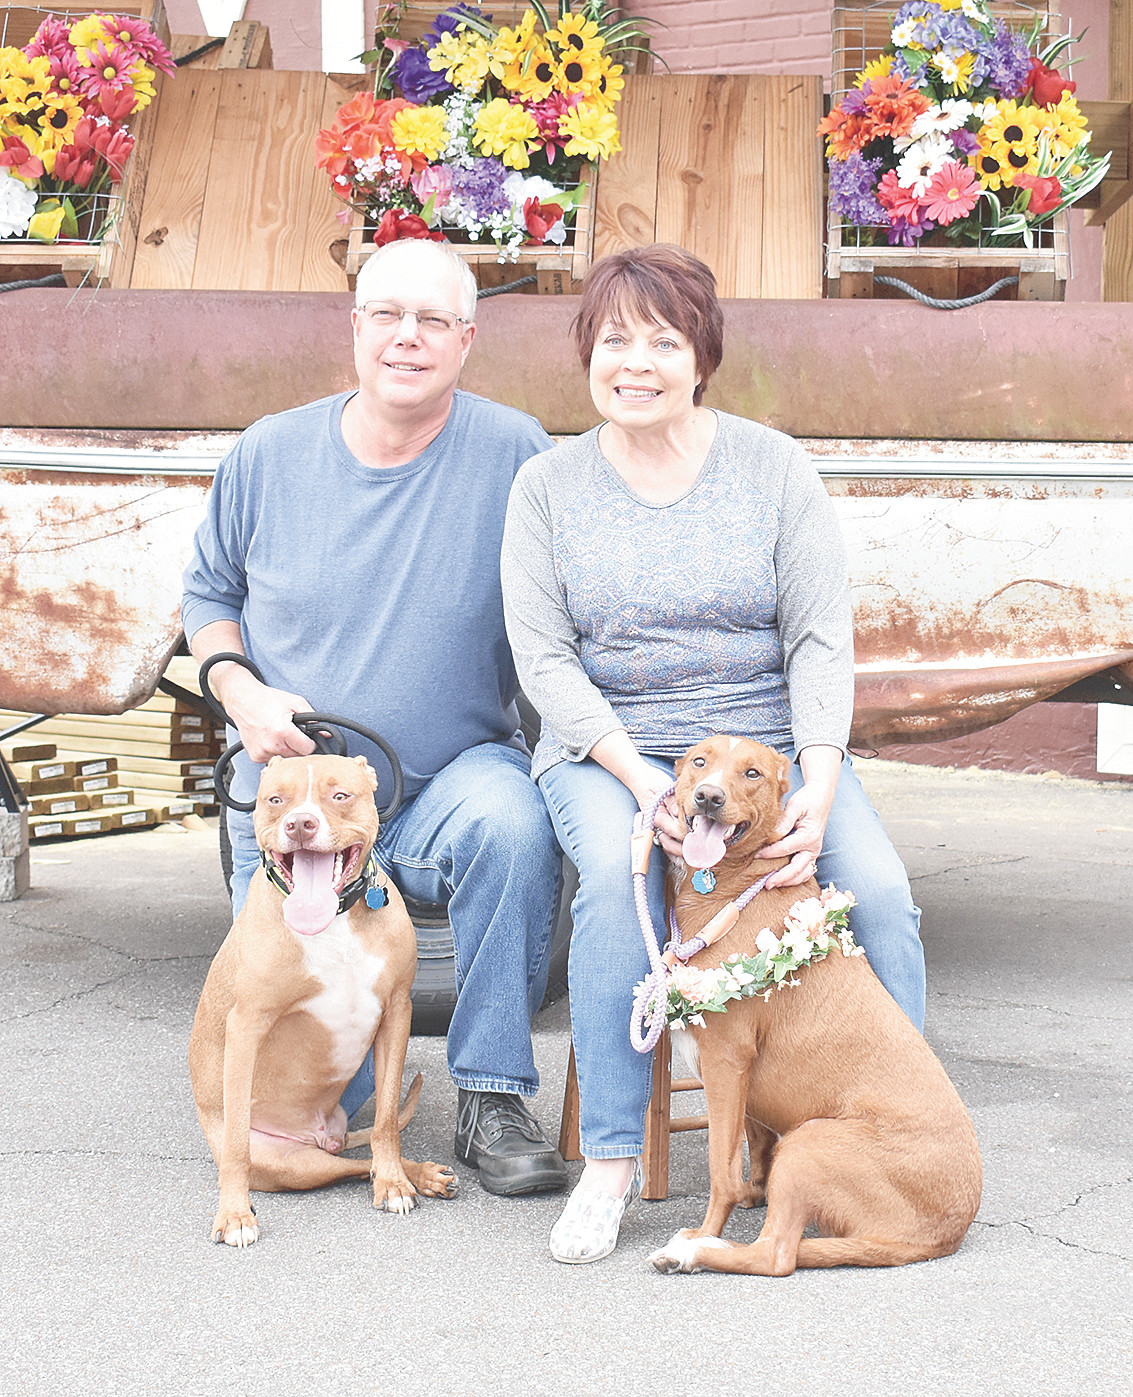 Randall and Beverly Wilson brought Finn (left) and Janet to the party. Both dogs came from the shelter and both only have three legs, Finn due to an injury and Janet due to a deformity.